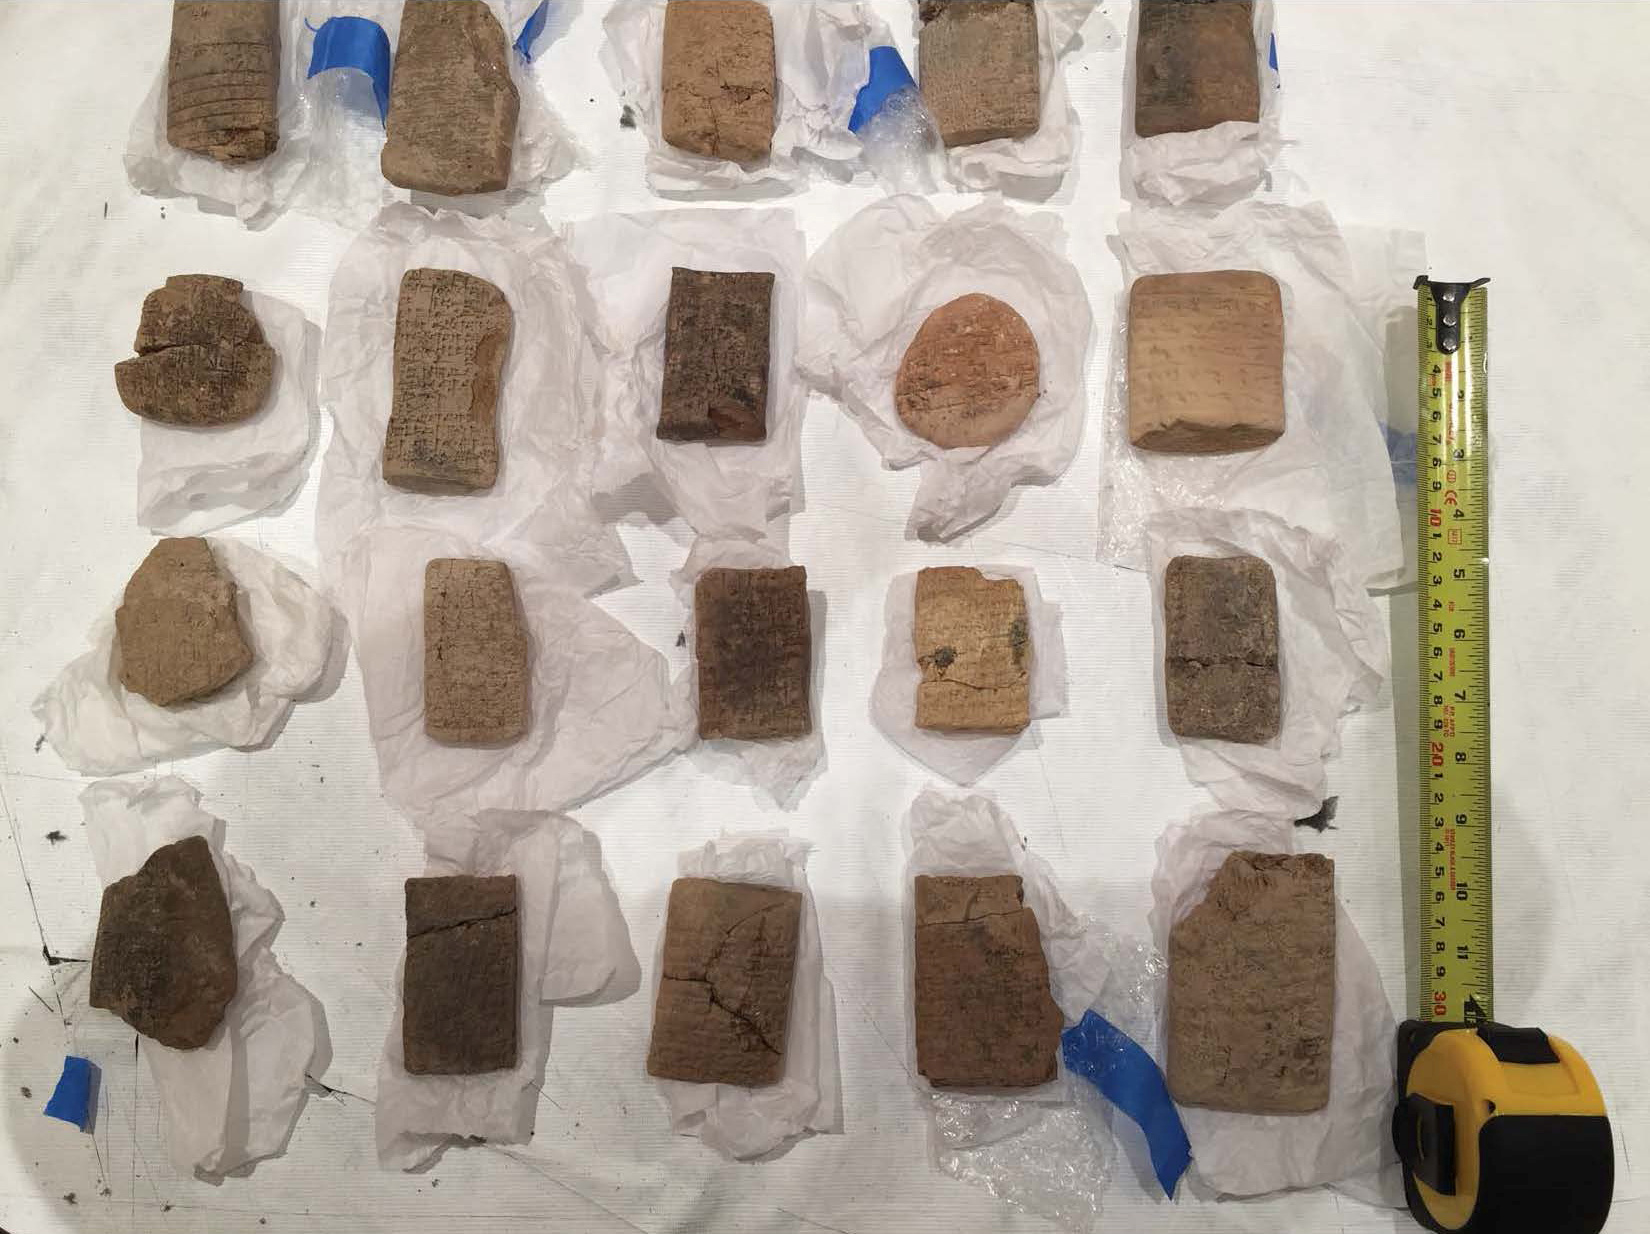 Repatriated Iraqi artifacts are shown in this photo in Washington, D.C., U.S., released May 2, 2018. U.S. Attorney's Office for the Eastern District of New York/Handout via REUTERS